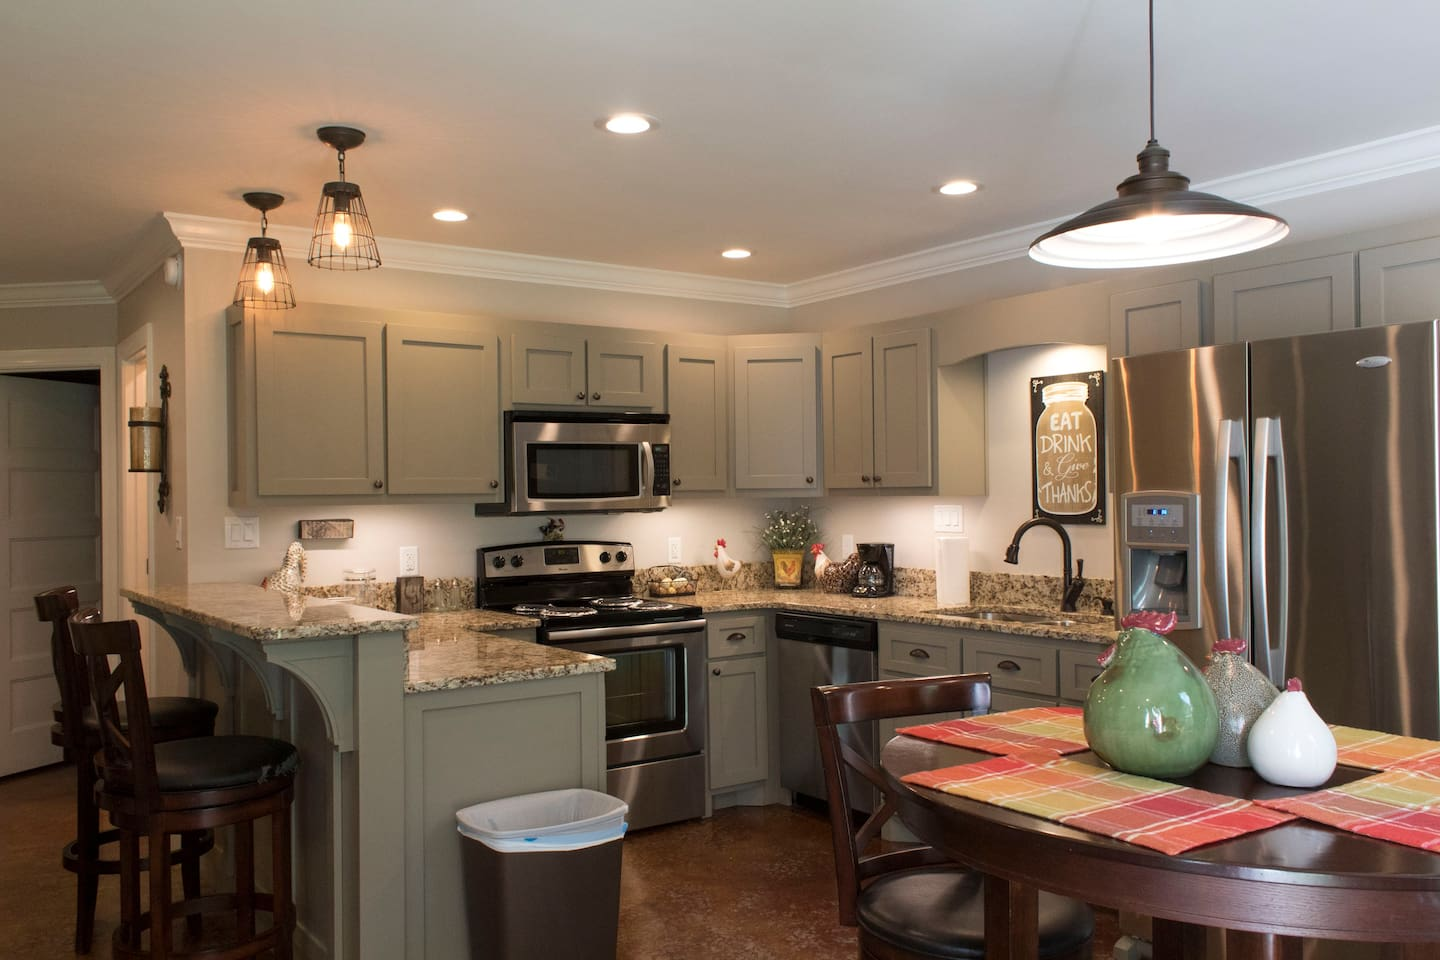 Fully furnished kitchen with coffee provided